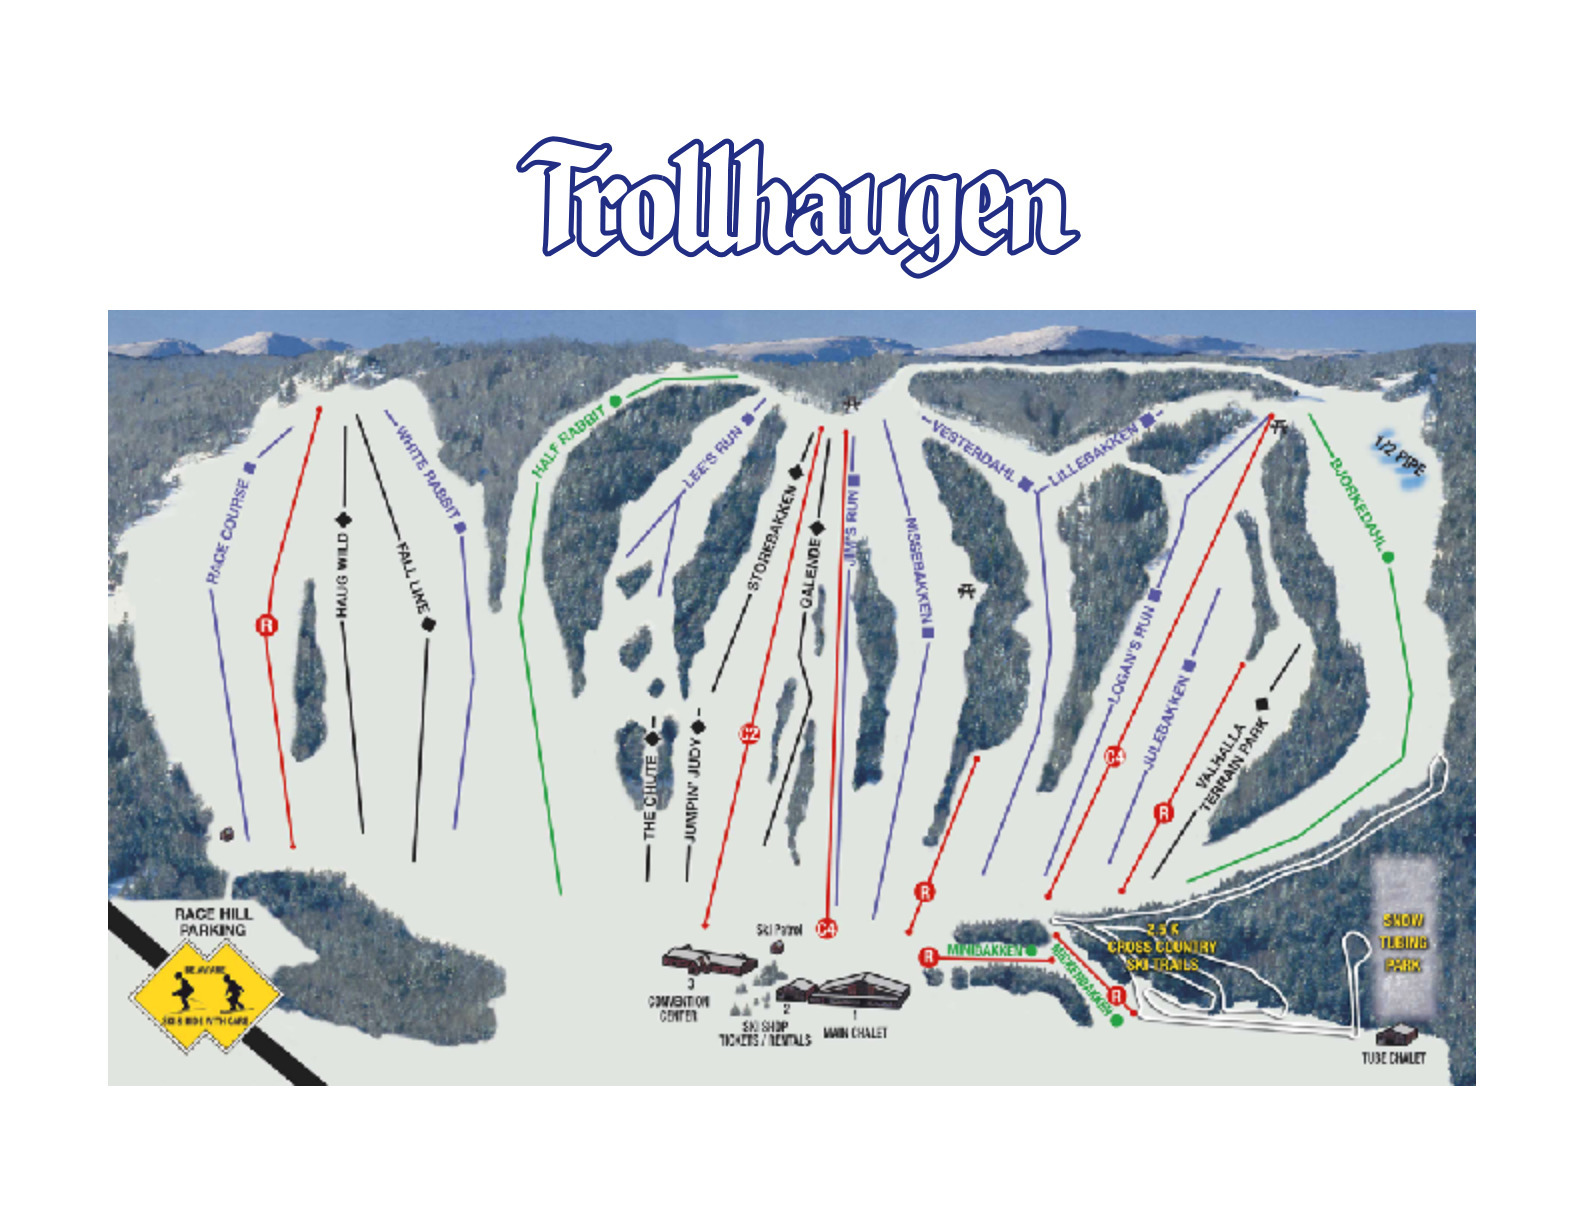 Trollhaugen Piste / Trail Map